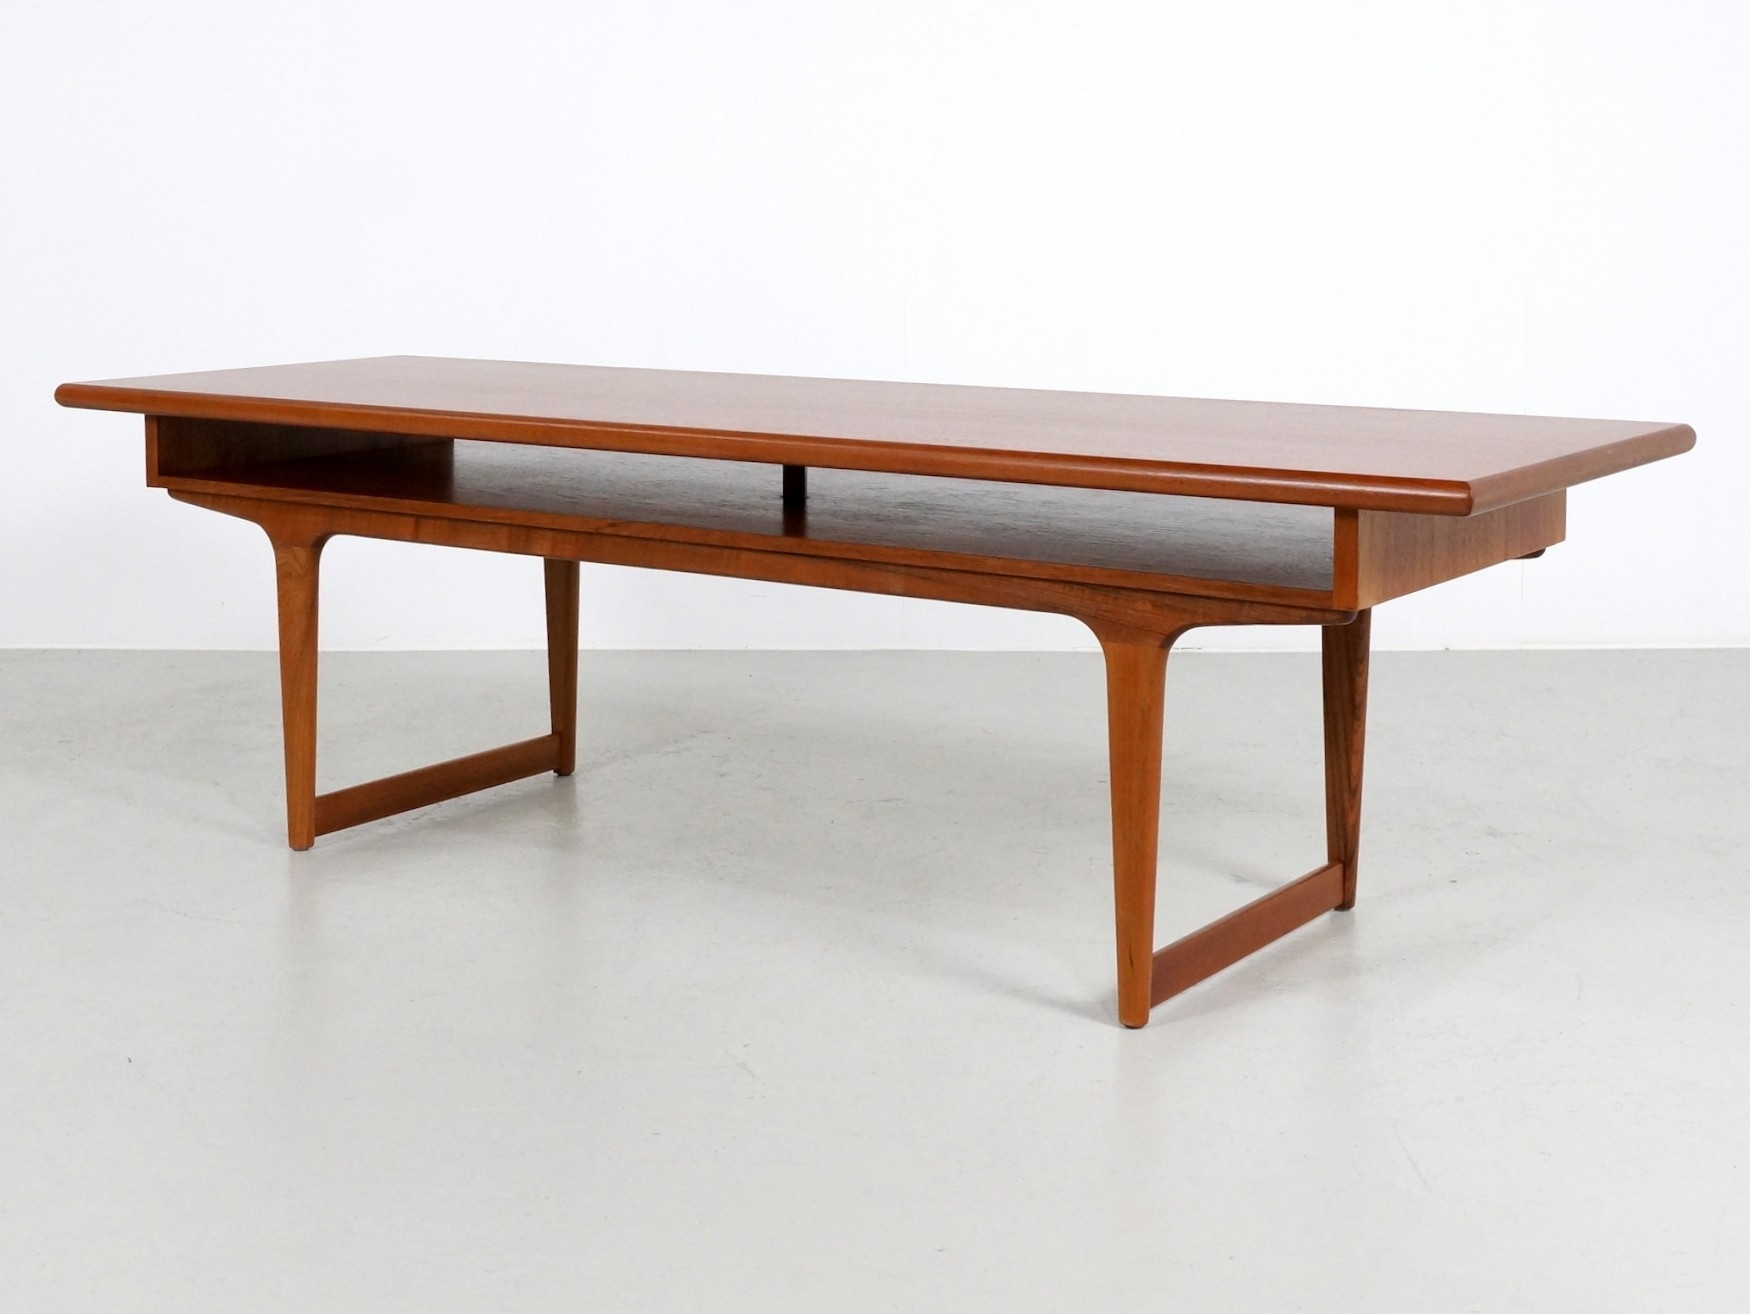 Large Danish Coffee Table In Teak Wood - 1960S - Design Market inside Large Teak Coffee Tables (Image 8 of 30)